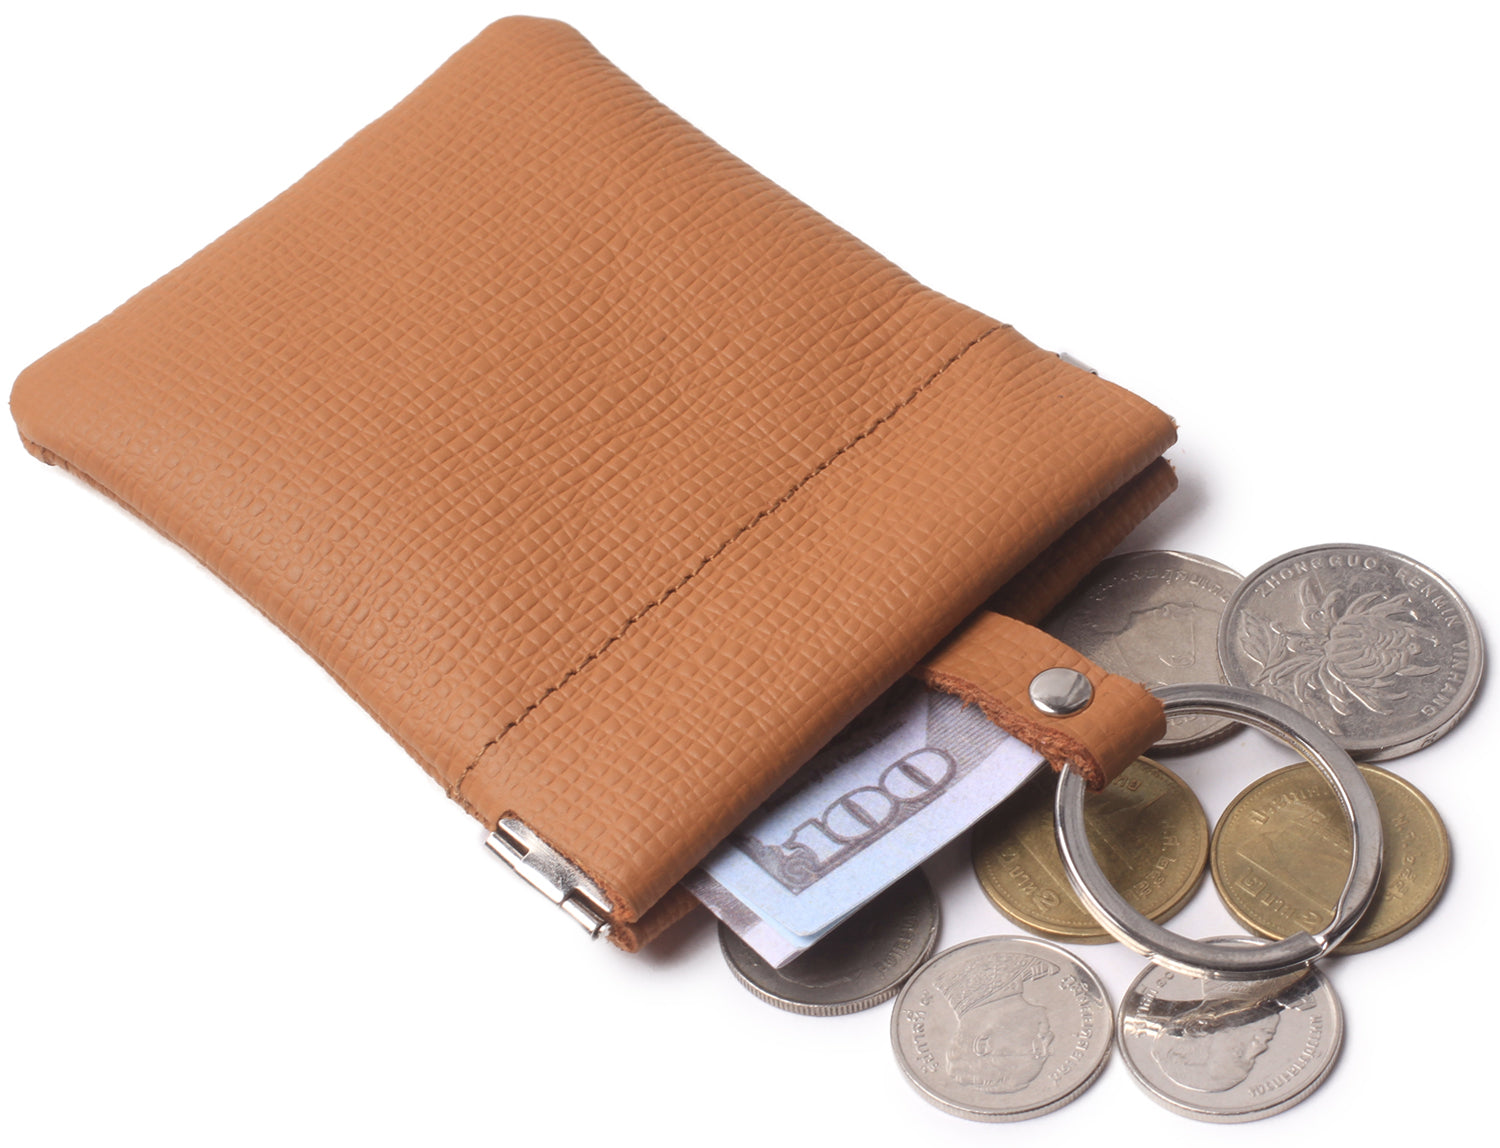 Leather Squeeze Coin Purse Pouch Change Holder For Men & Woman With Key Chain and Key Ring Small Size BG3022 Light Brown - Borgasets